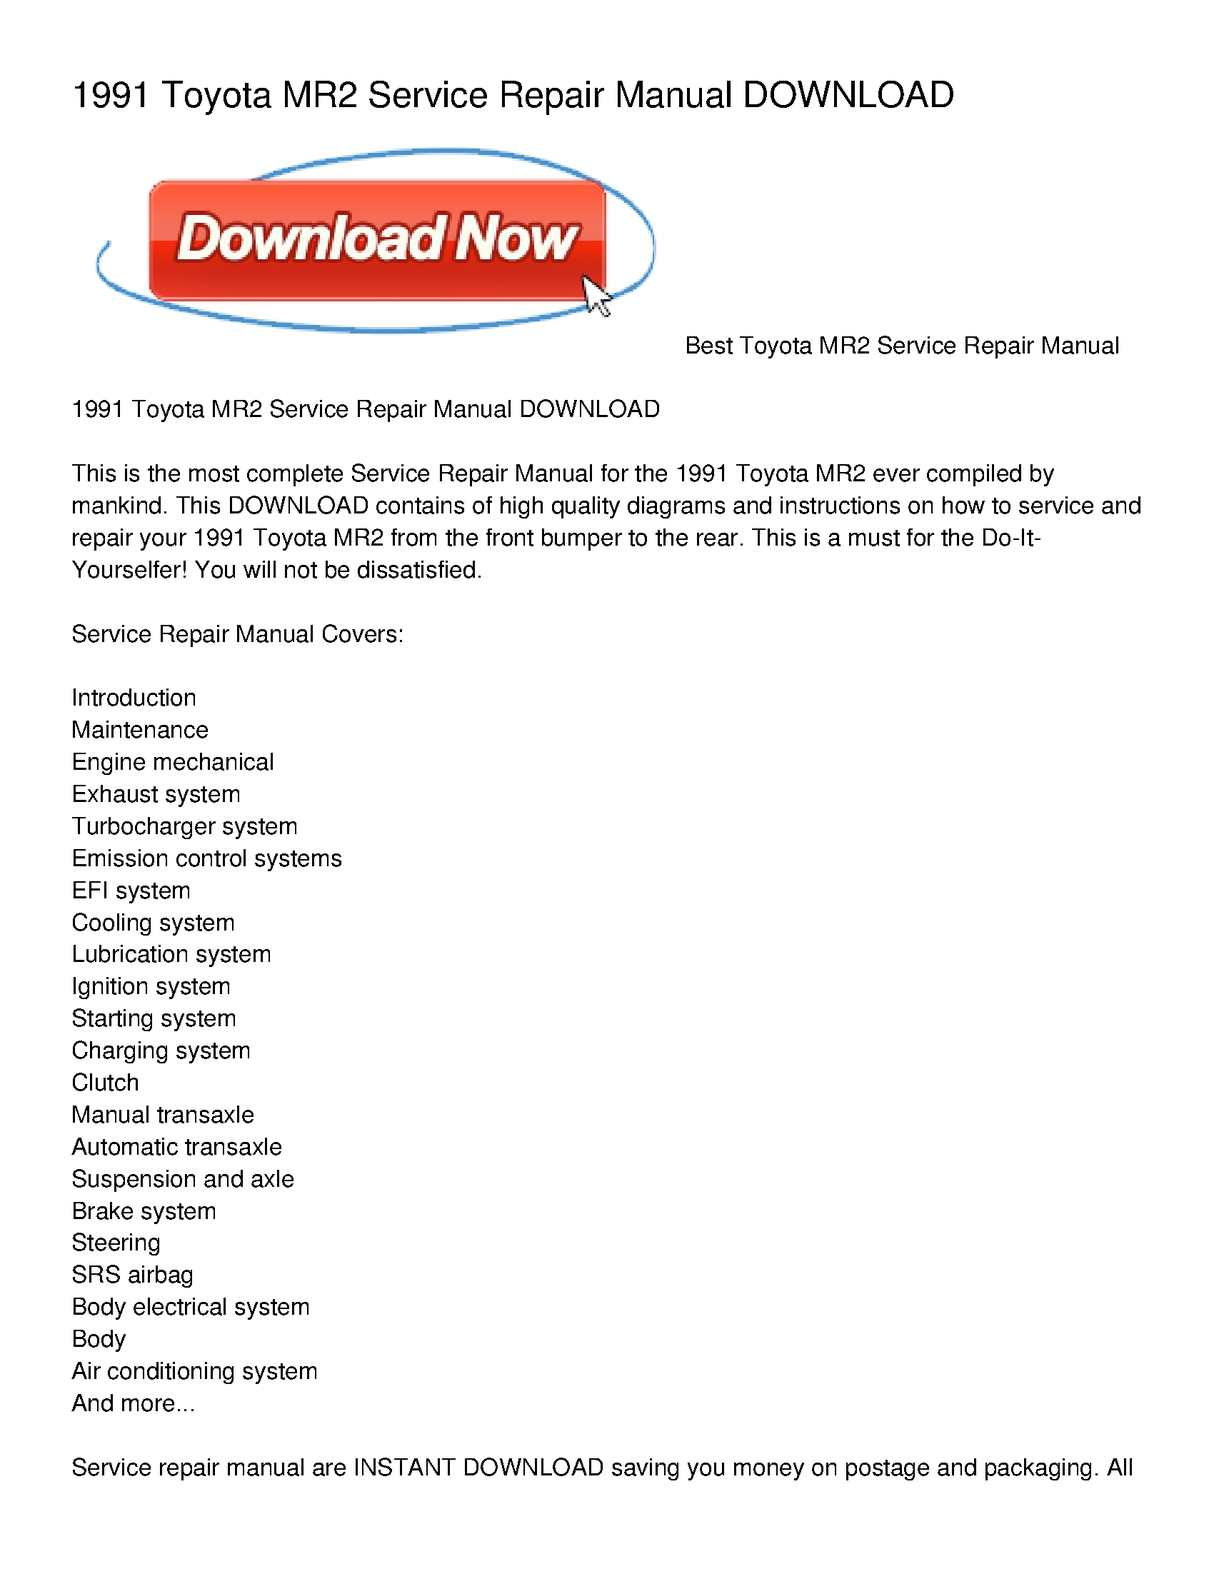 calam o 1991 toyota mr2 service repair manual download rh calameo com Toyota Celica 1991 toyota mr2 repair manual pdf free